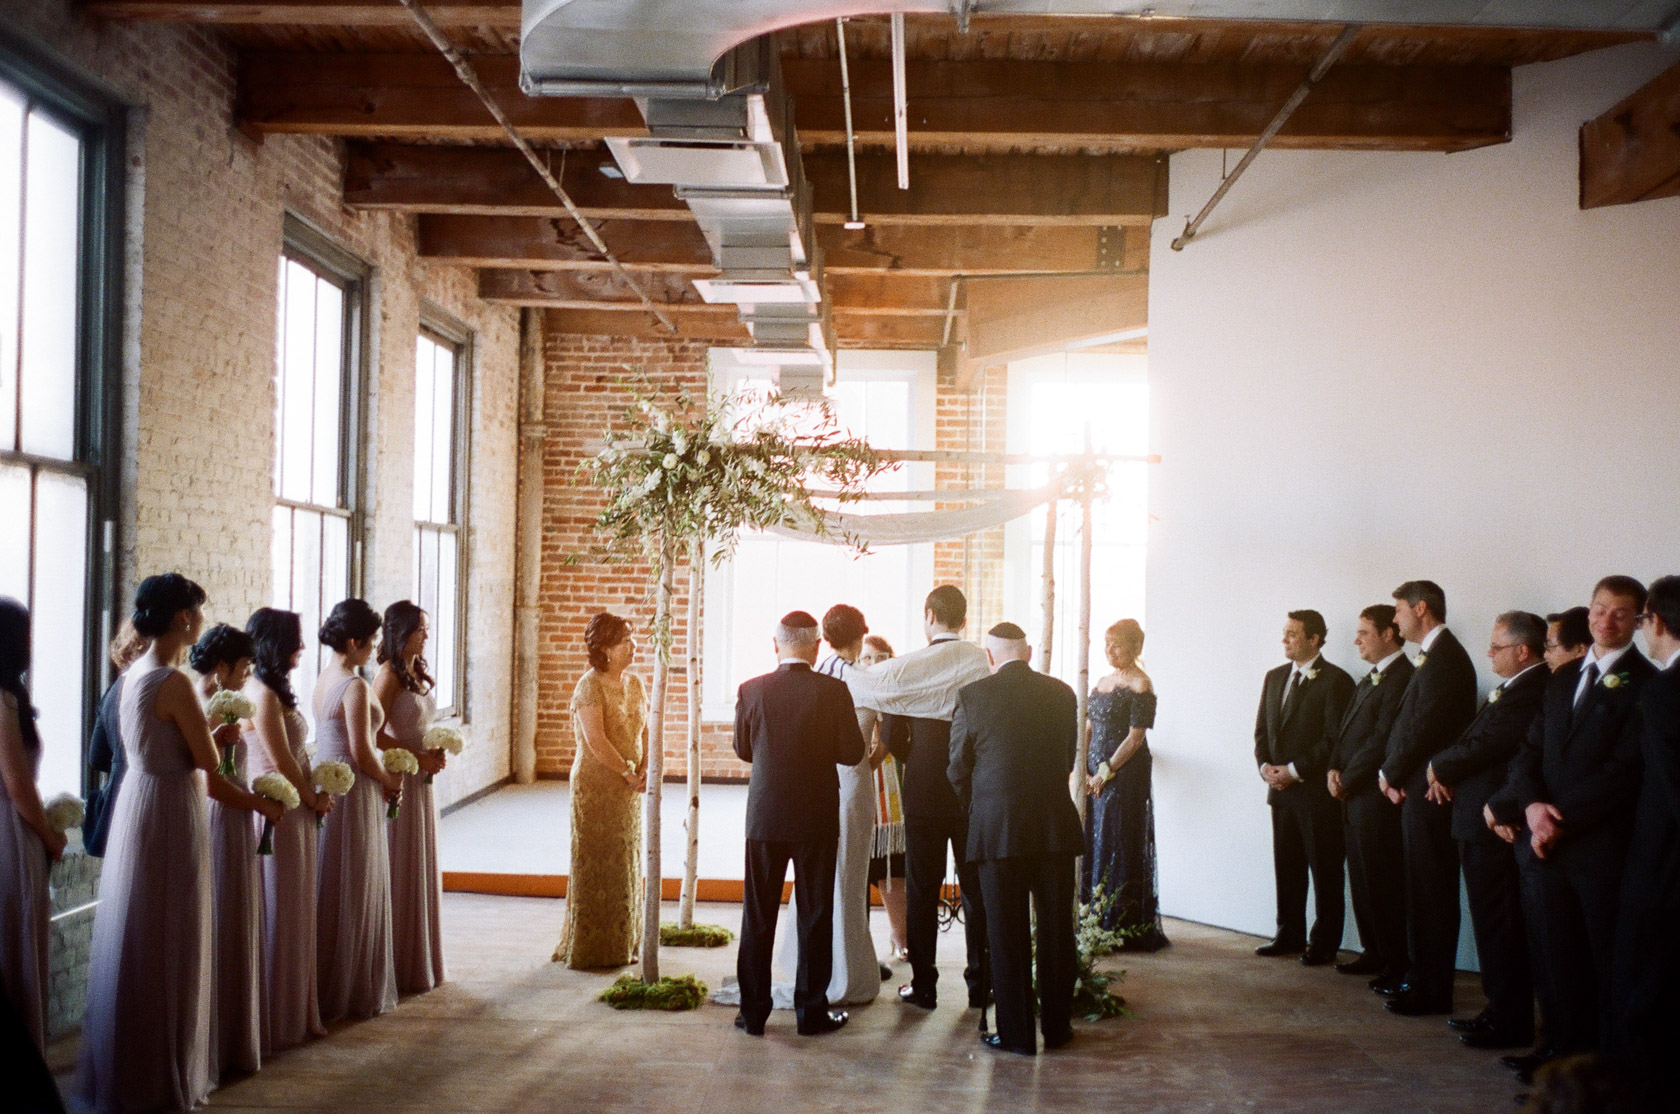 new orleans wedding ceremony on film at cac - 03